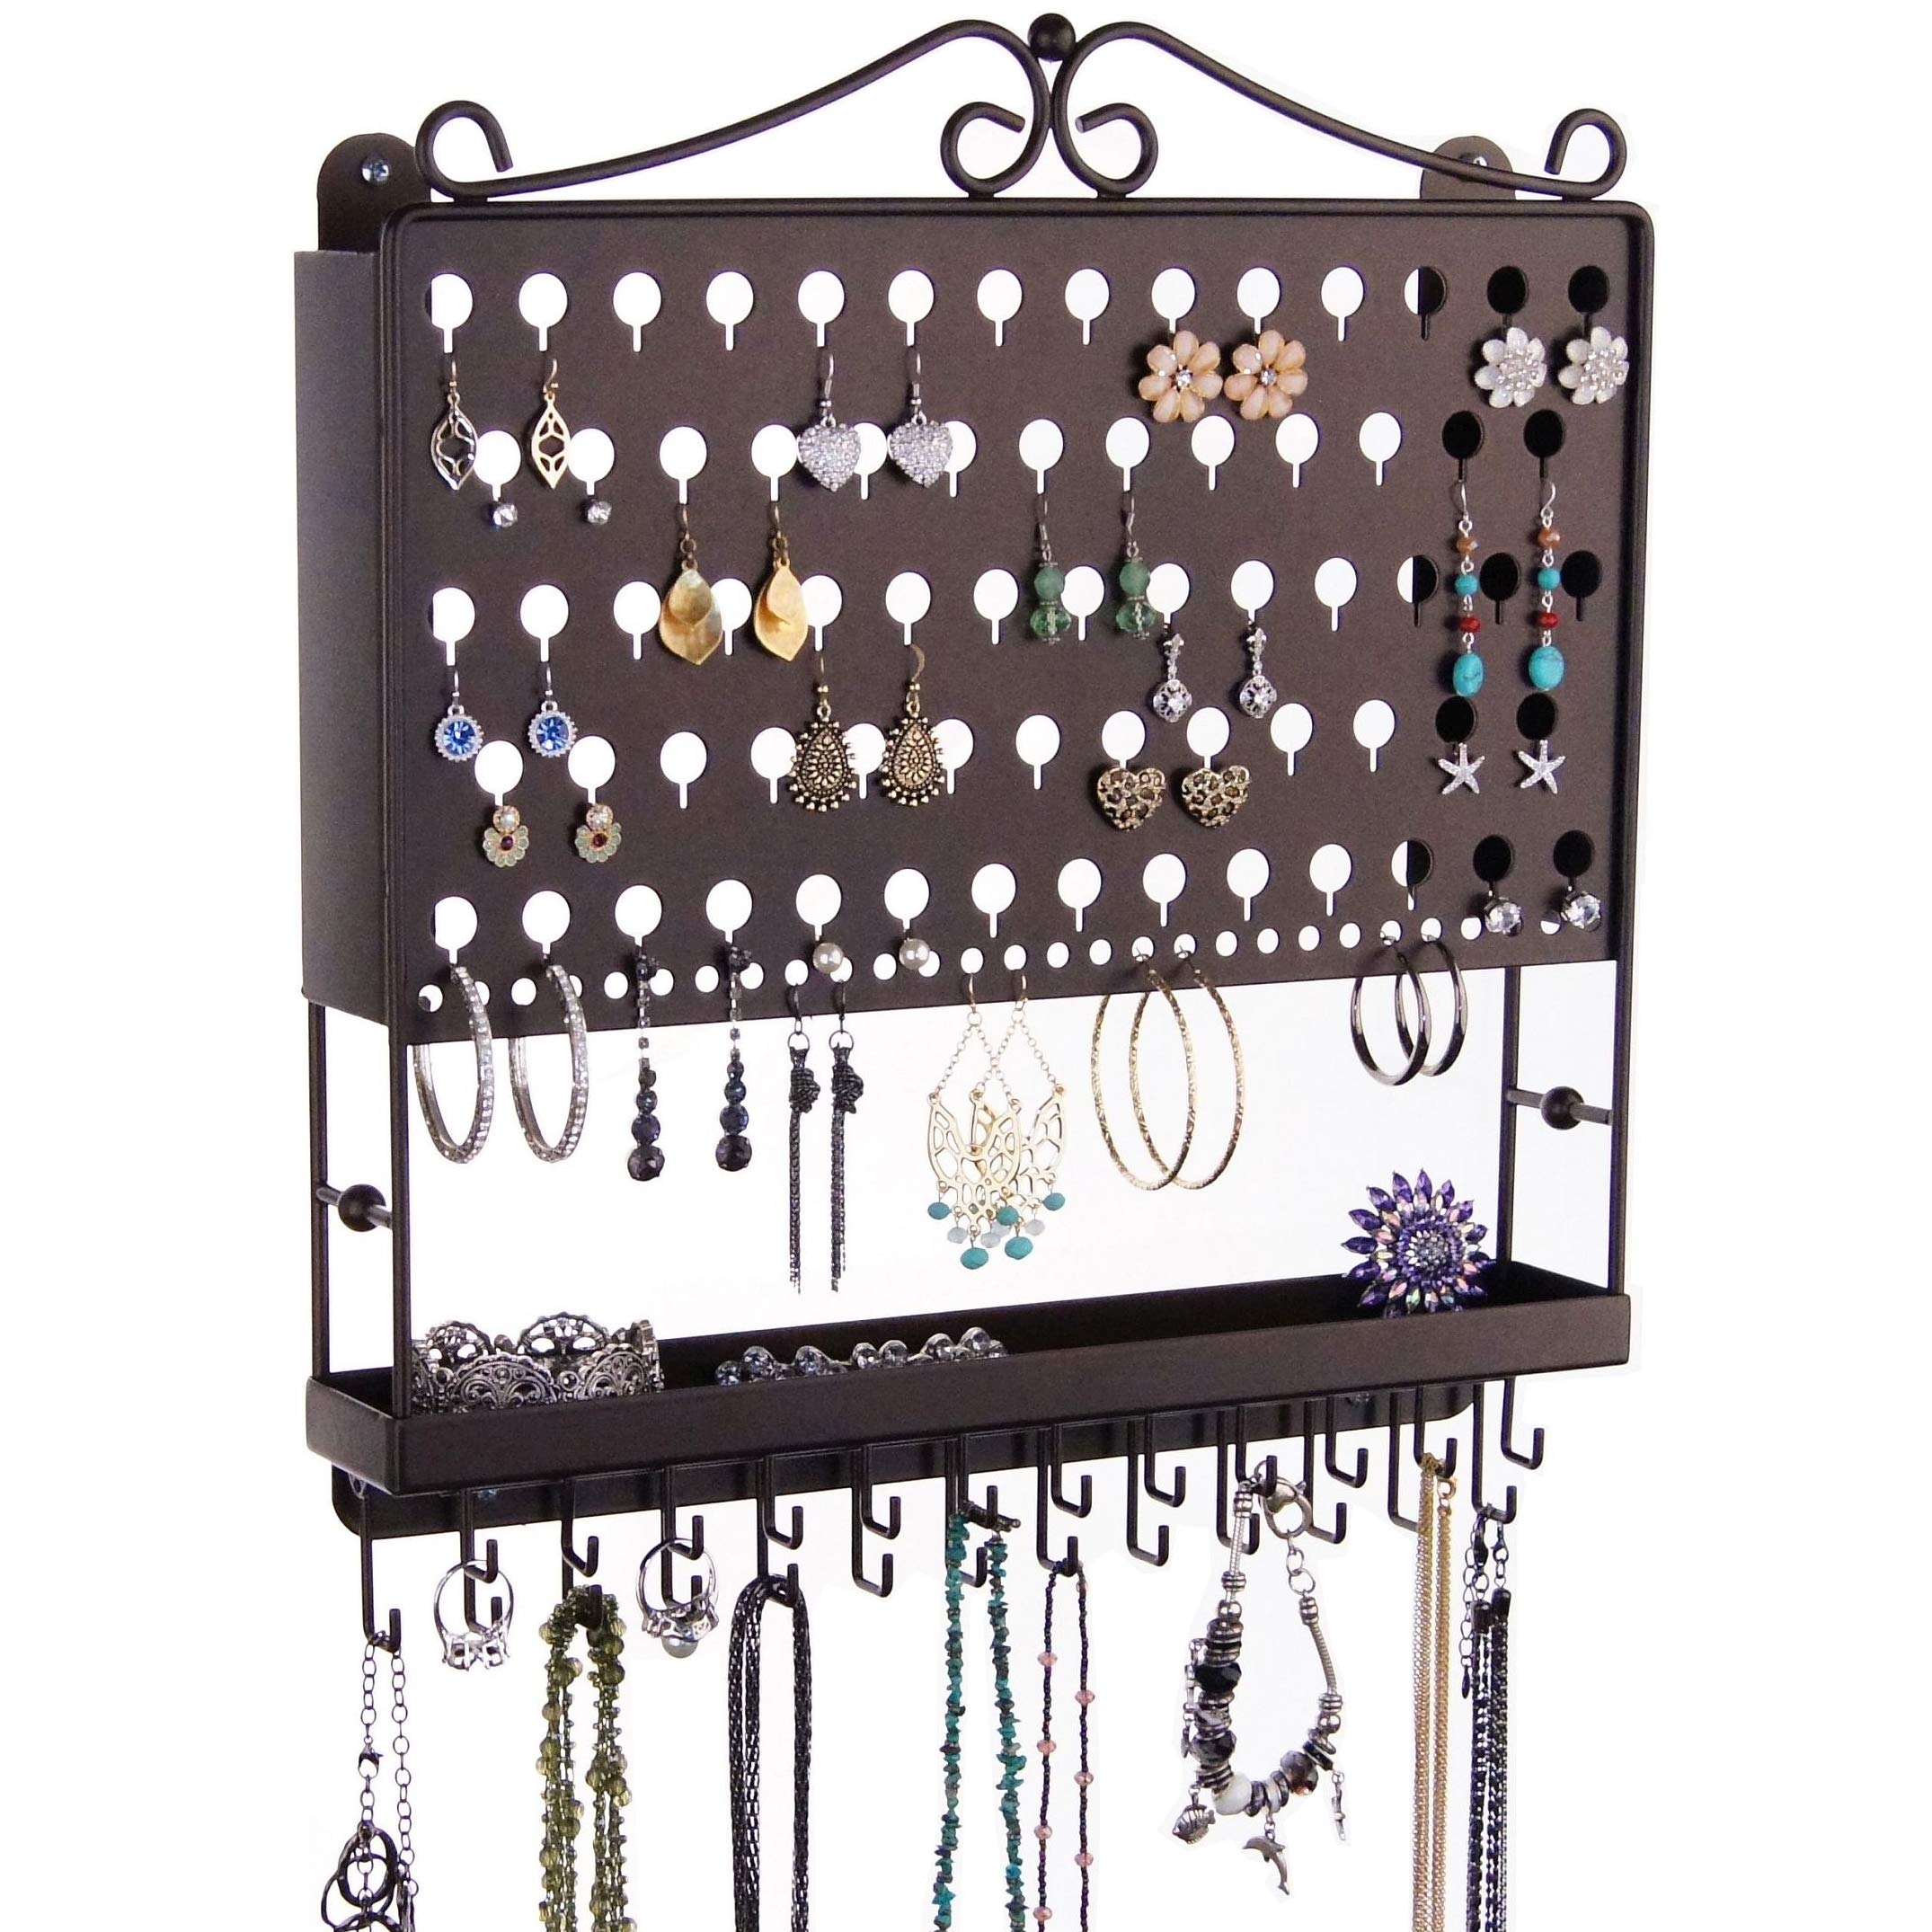 Angelynn's Hanging Jewelry Organizer Earring Holder Wall Mount Closet Necklace Storage Bracelet Rack, Rubbed Bronze